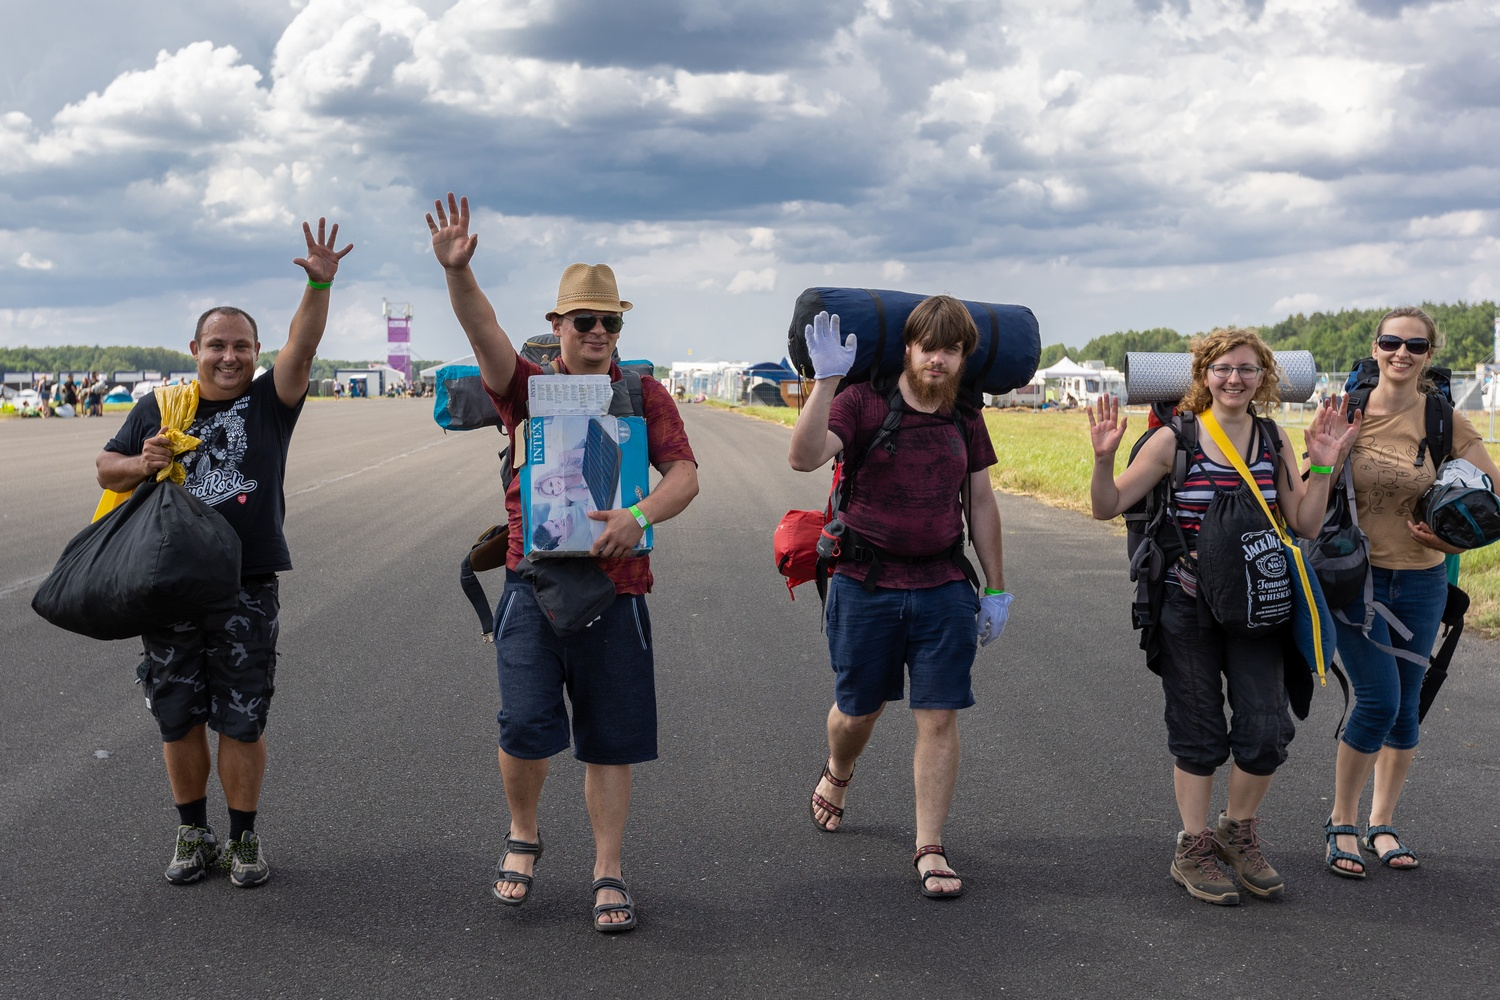 Festival goers on their way to the campsite. photography Lucyna Lewandowska